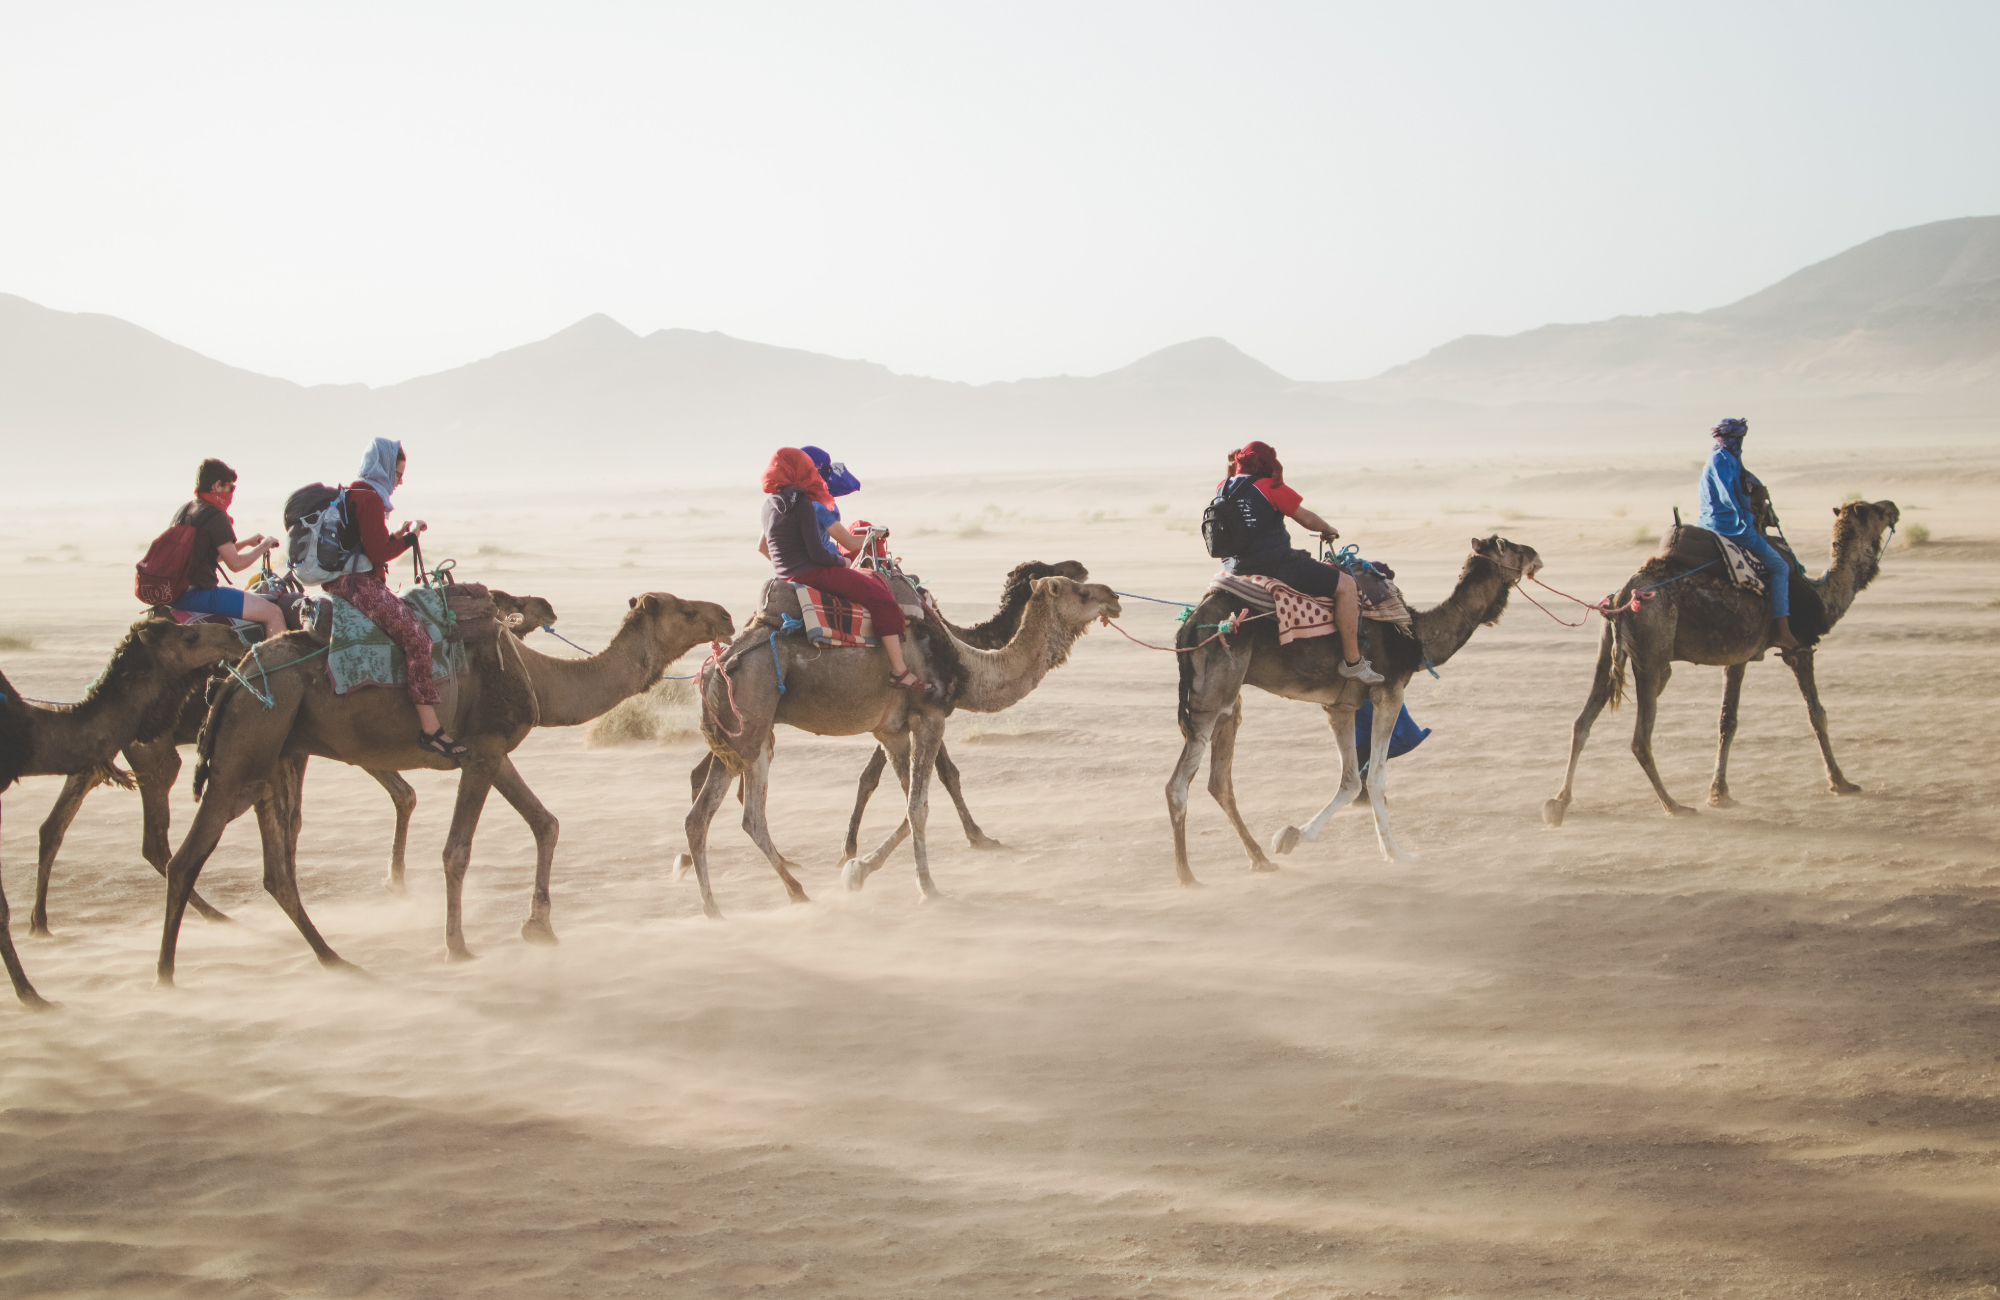 A group of people riding camels through the desert